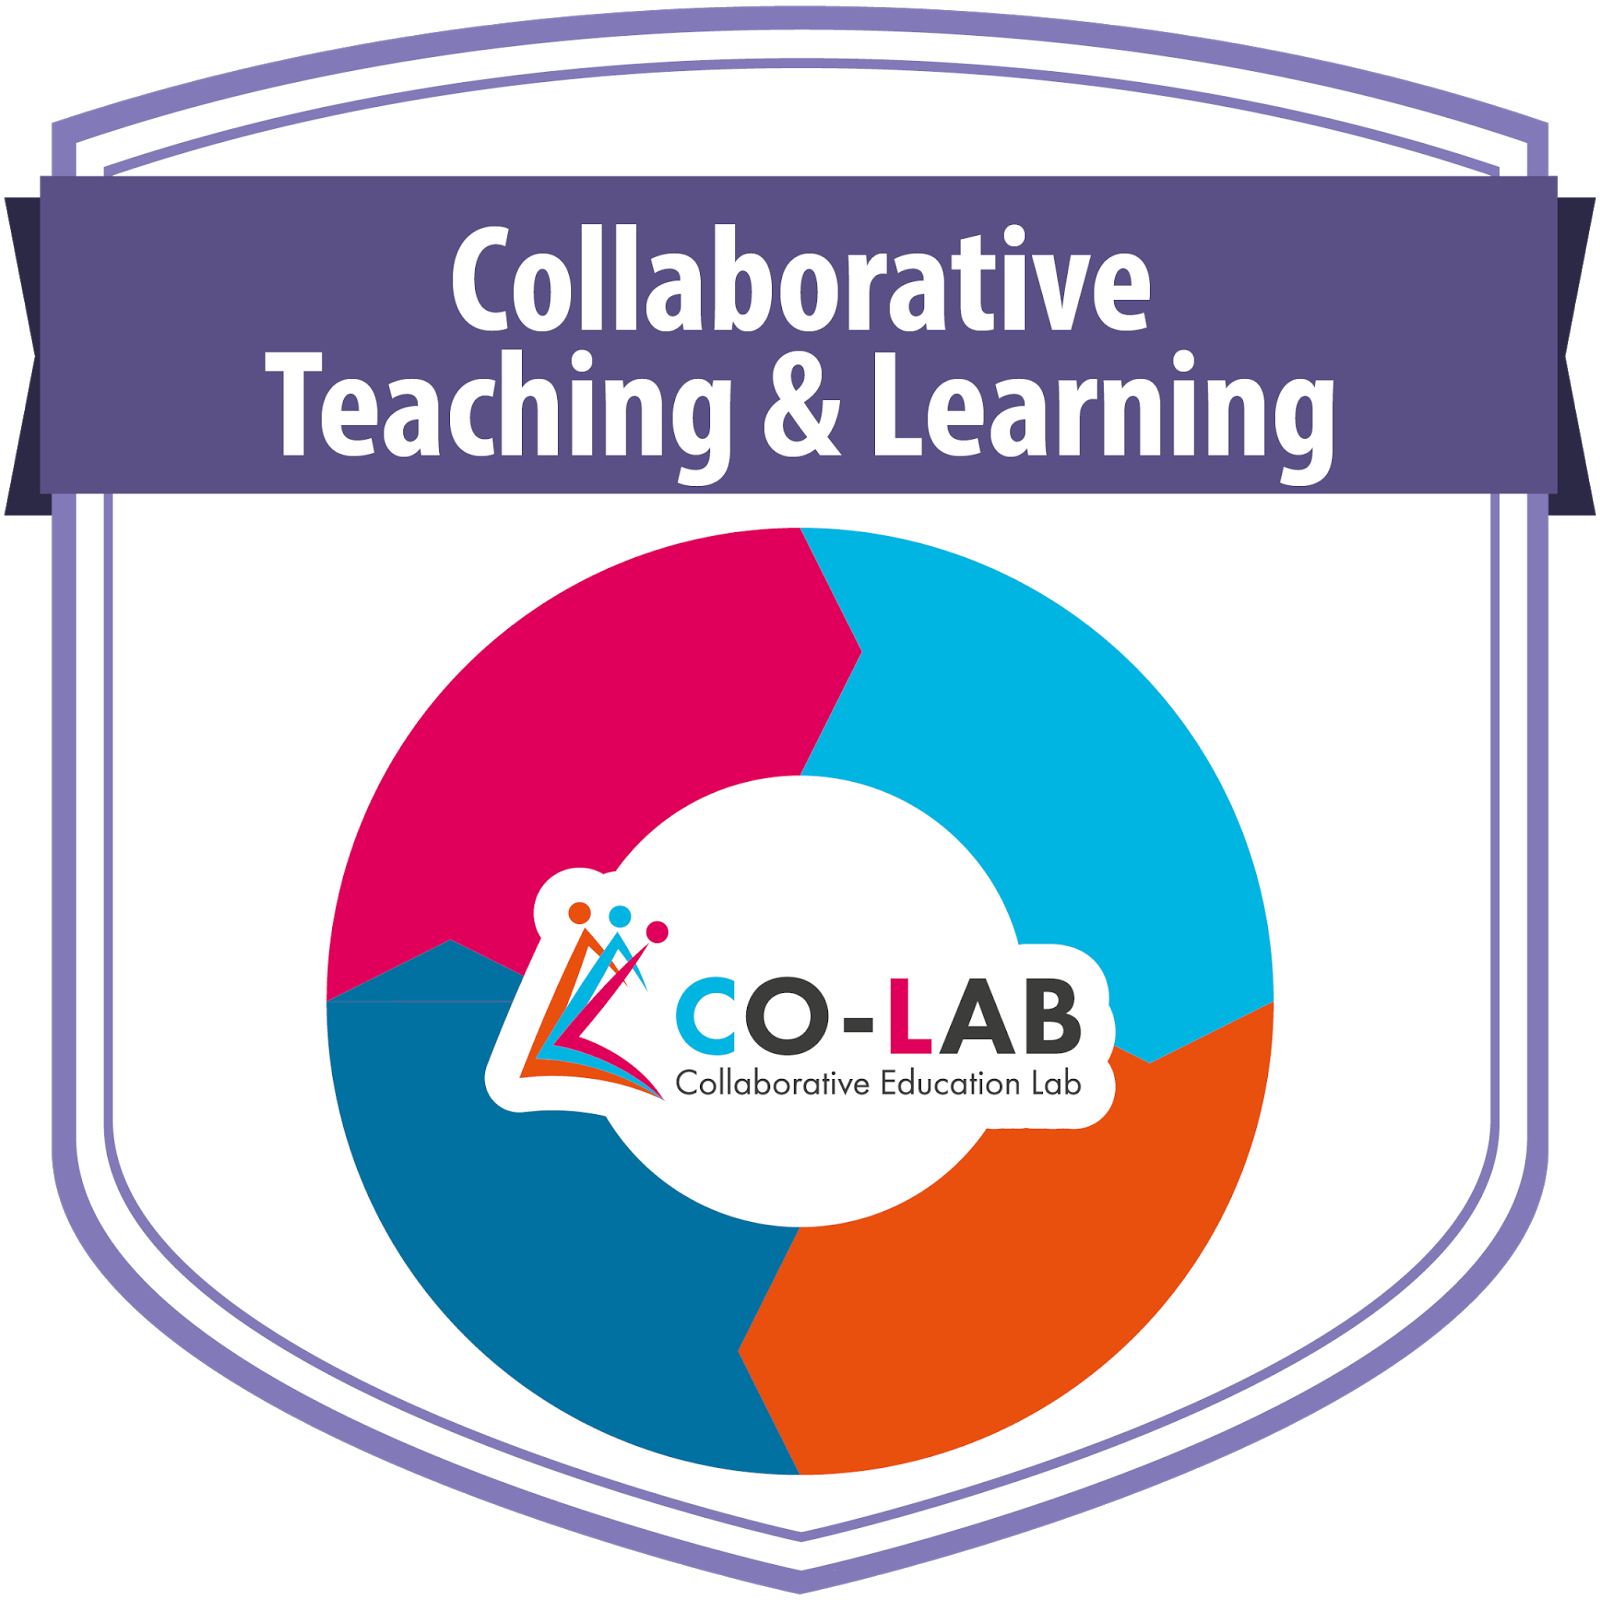 Collaborative Teaching For Esl : Discussing about education collaborative teaching and